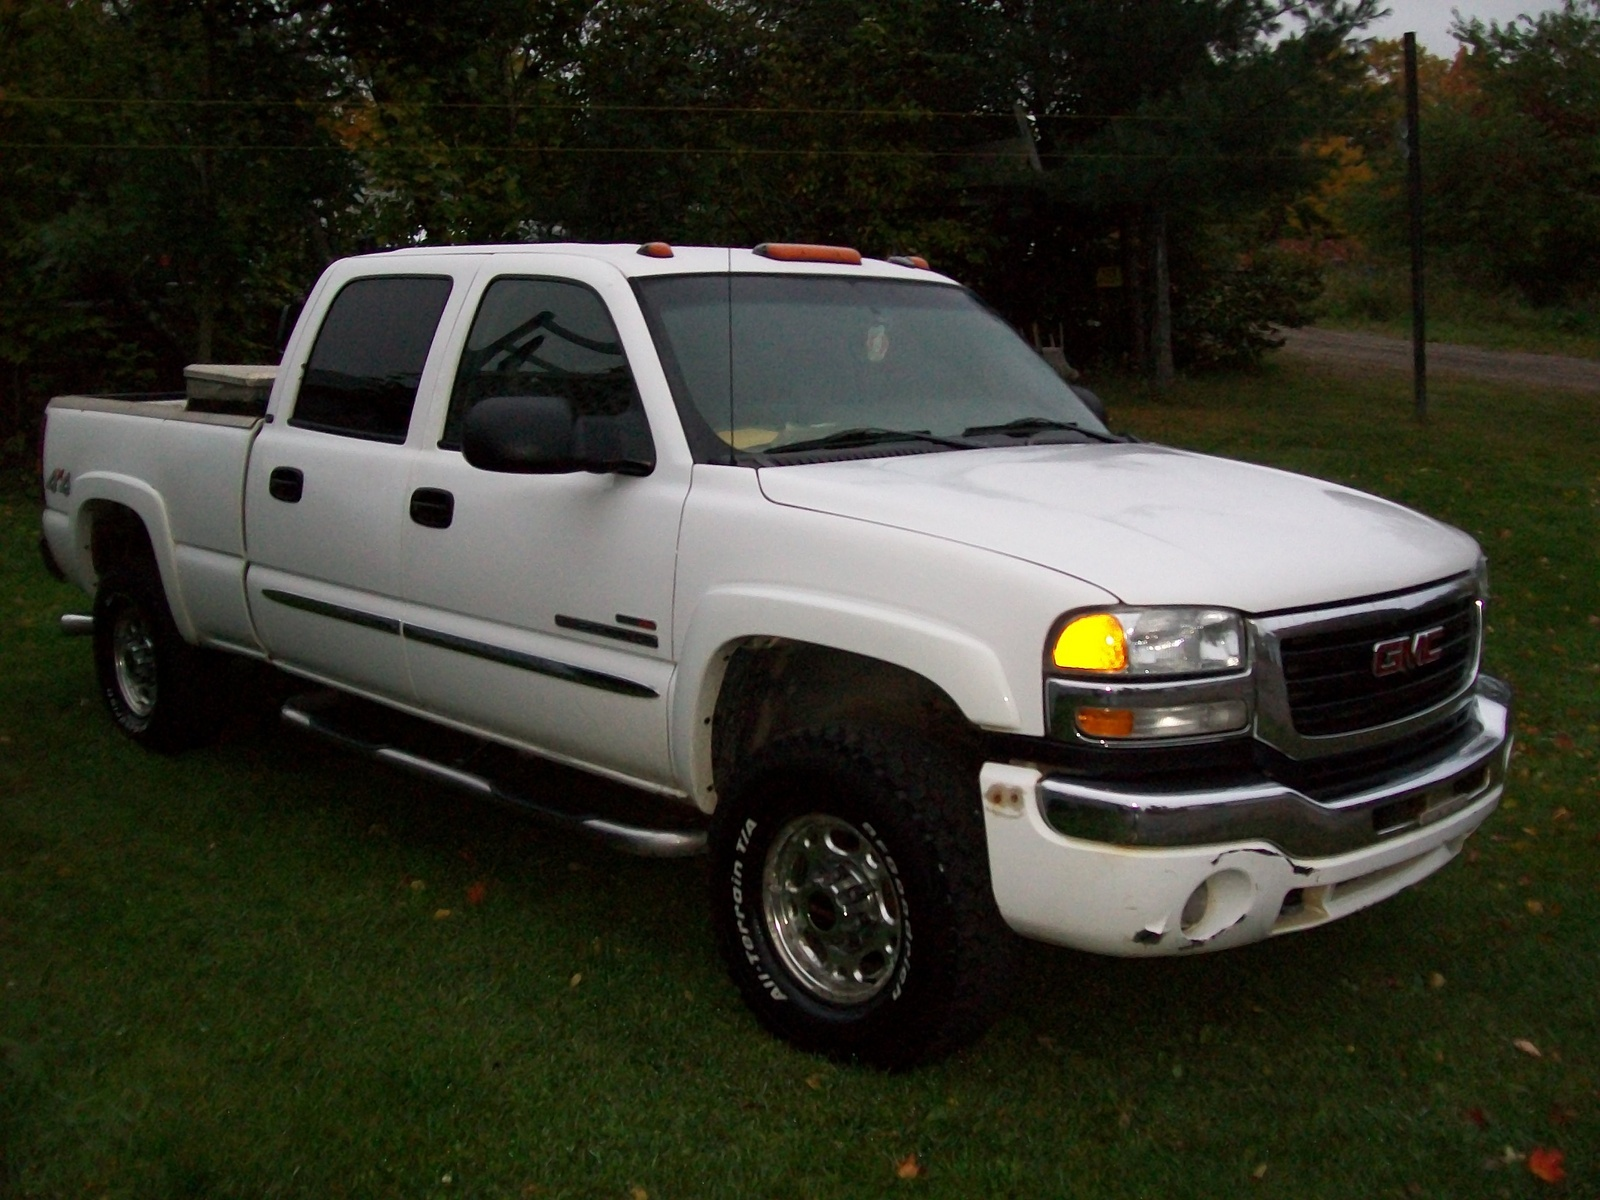 Picture of 2005 gmc sierra 2500hd 4 dr slt 4wd crew cab lb hd exterior